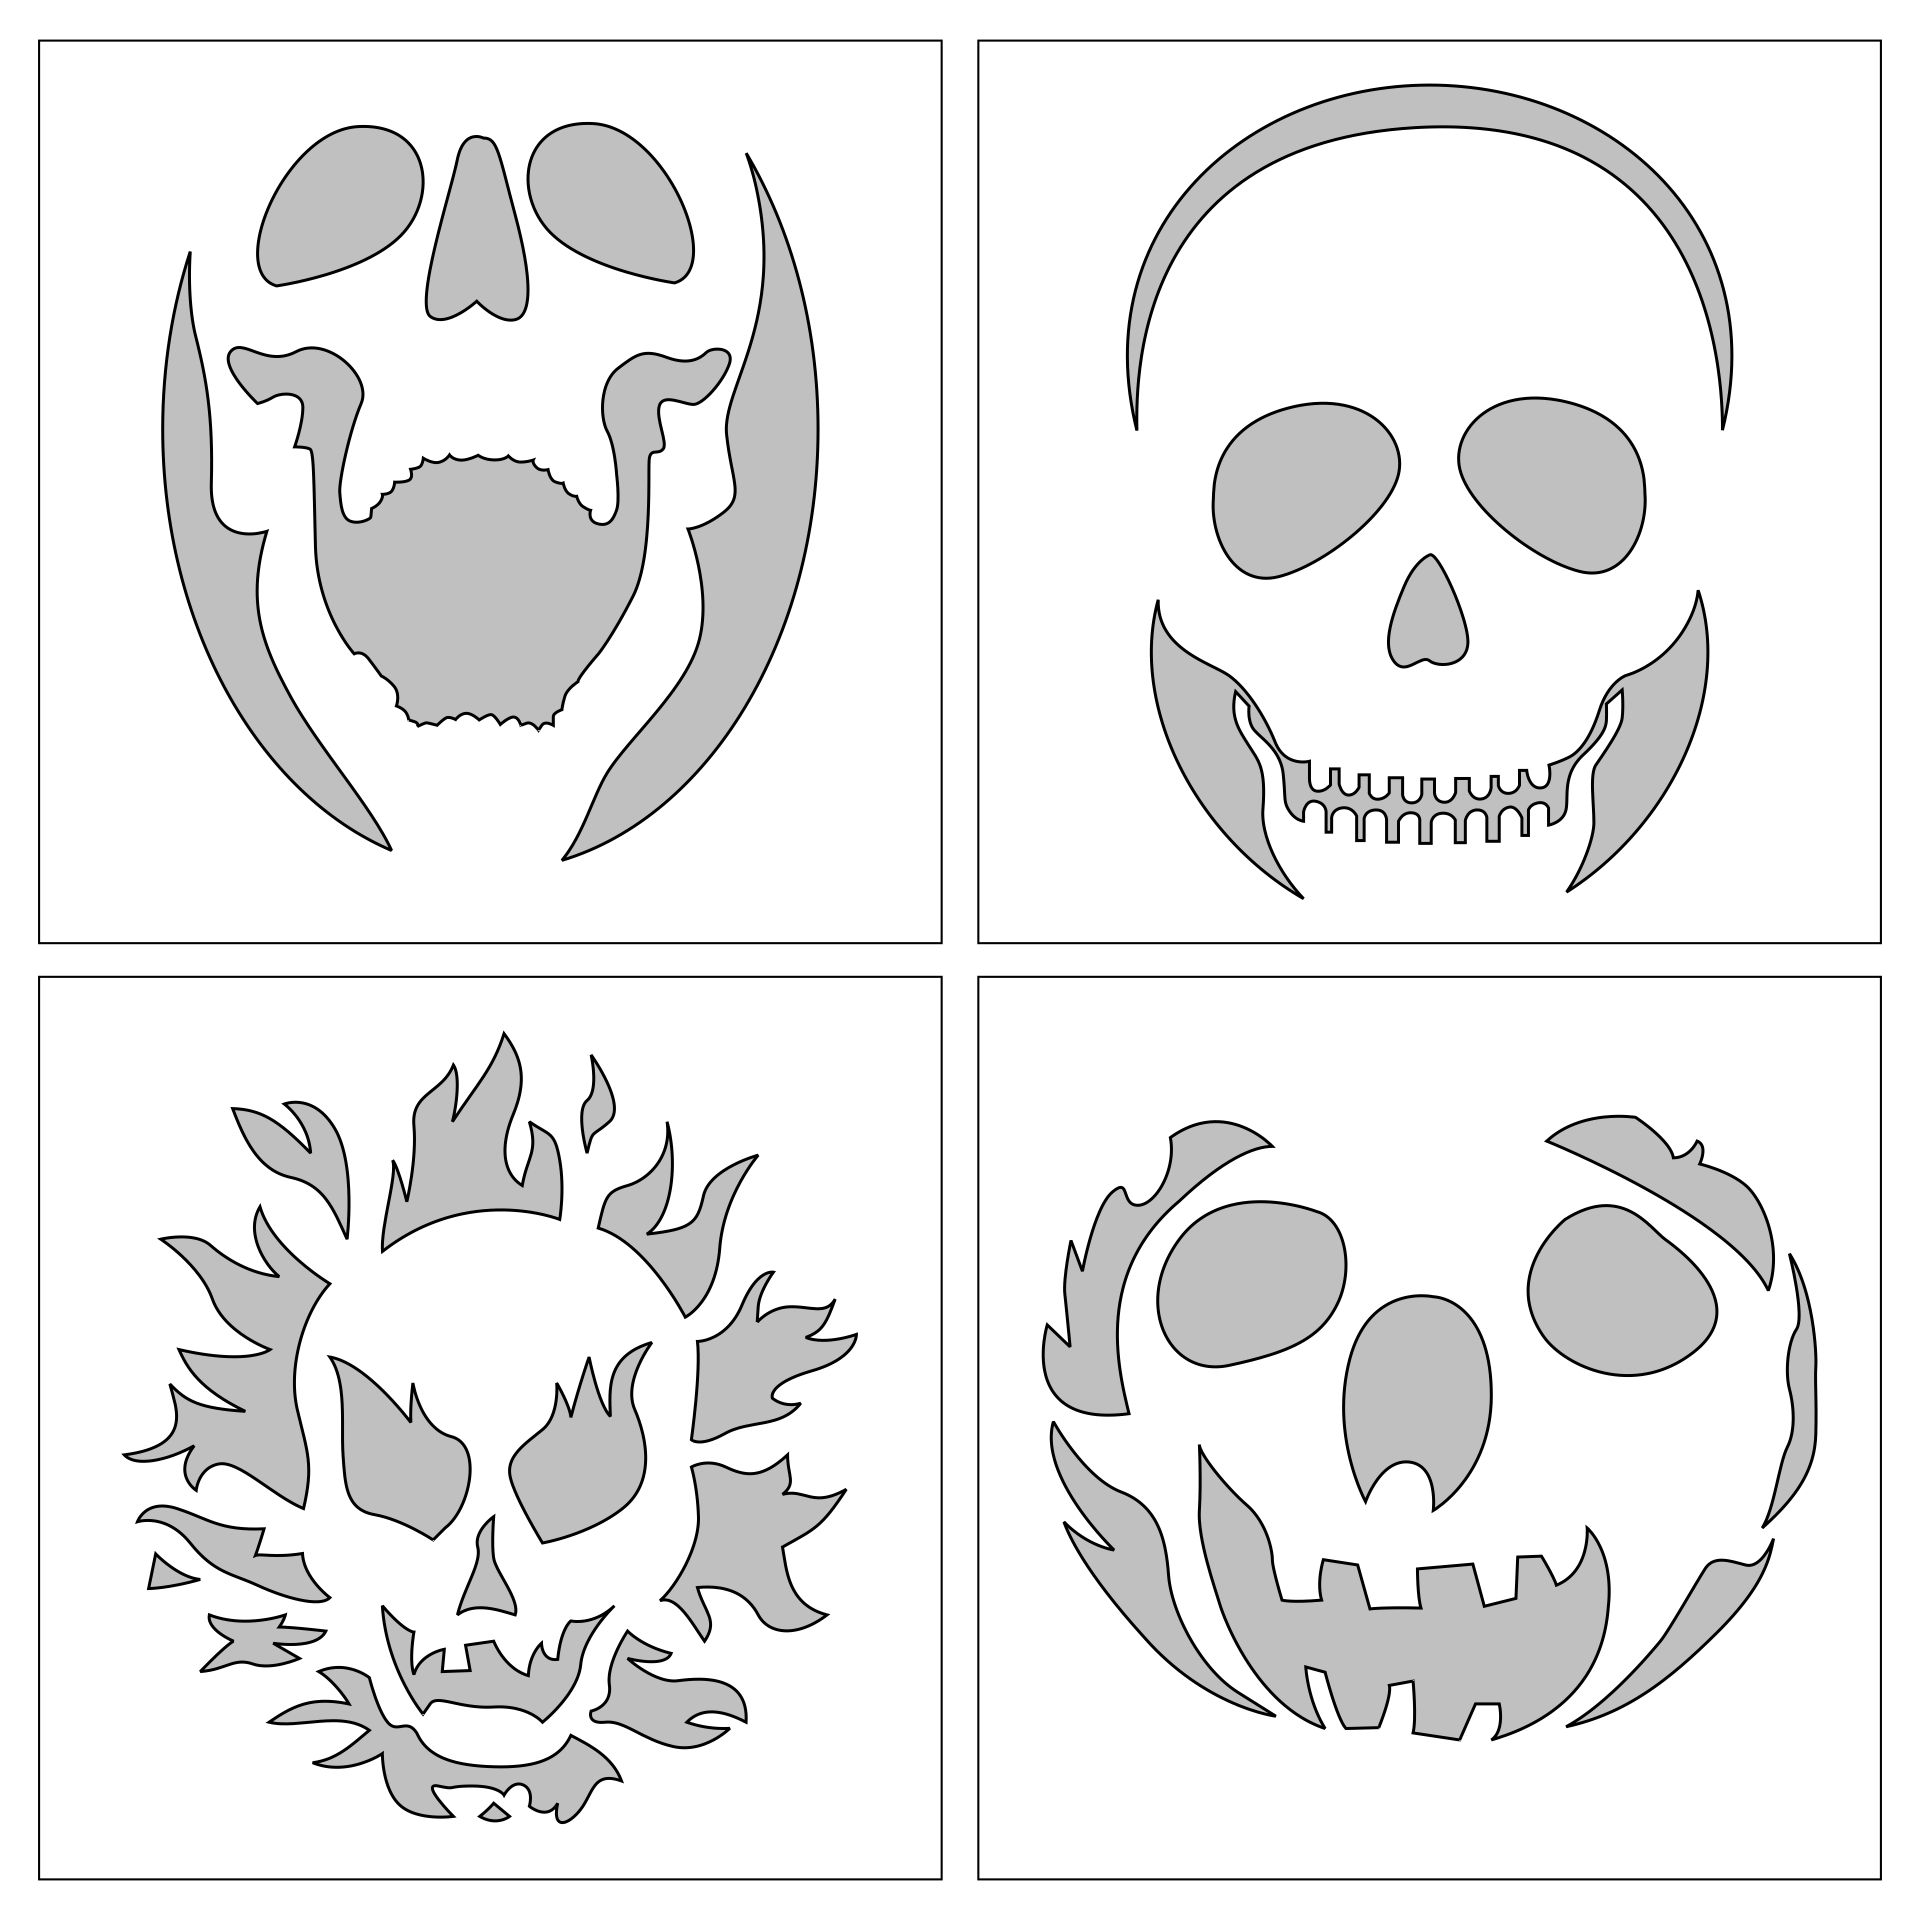 Cracked Skull Pumpkin Templates For Carving